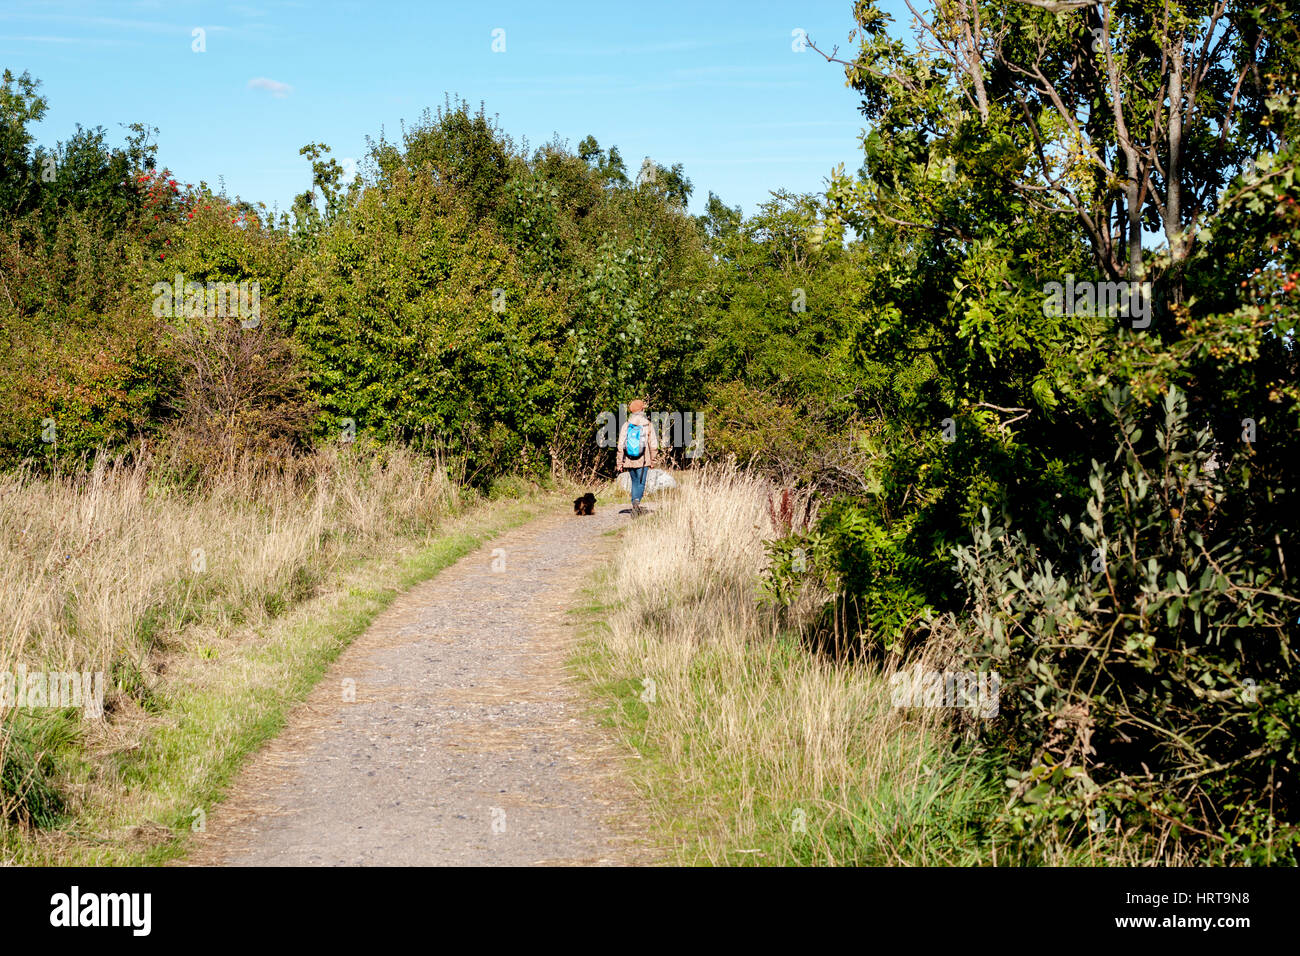 Woman wearing a brown cap and a blue backpack walking her black dog on a public path in nature. - Stock Image